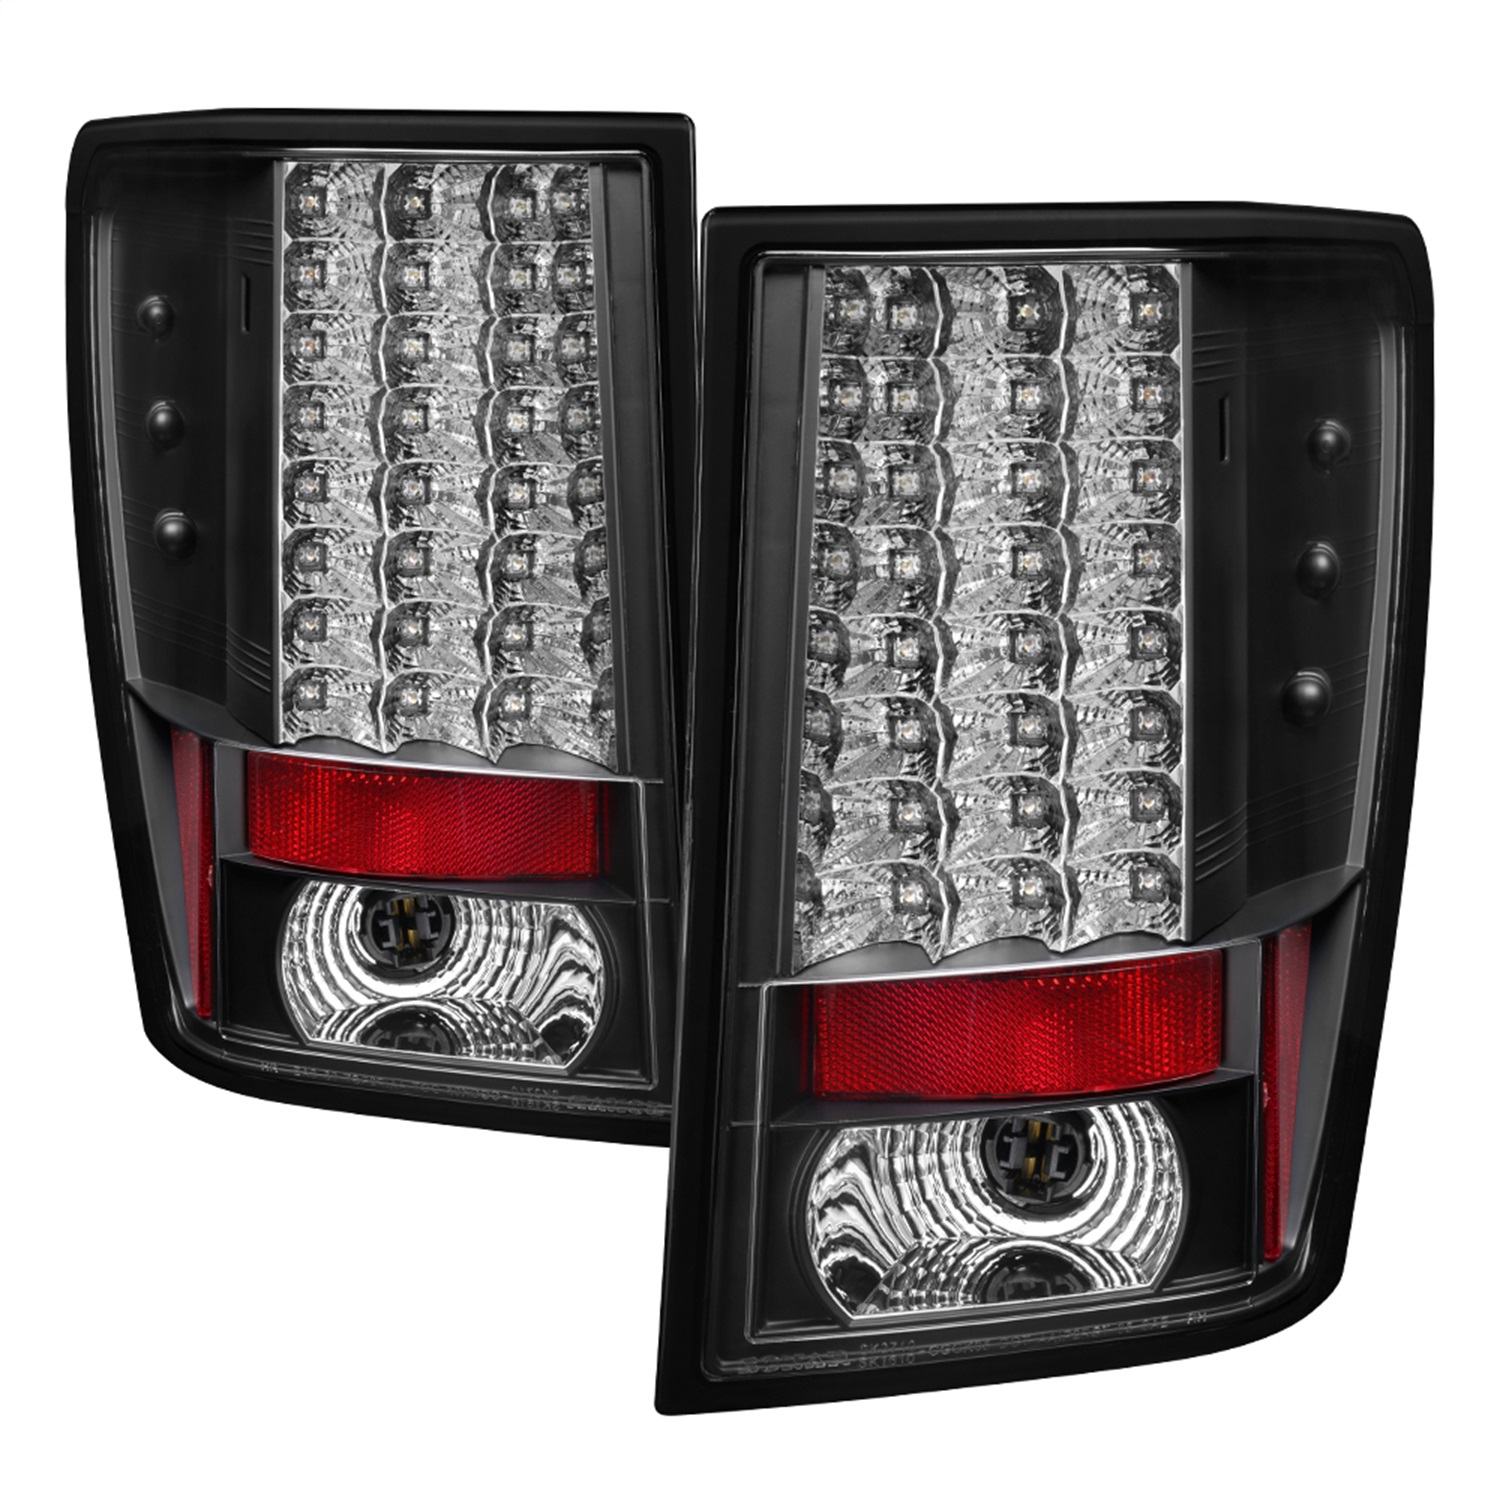 Spyder Auto 5070197 LED Tail Lights Fits 07-10 Grand Cherokee